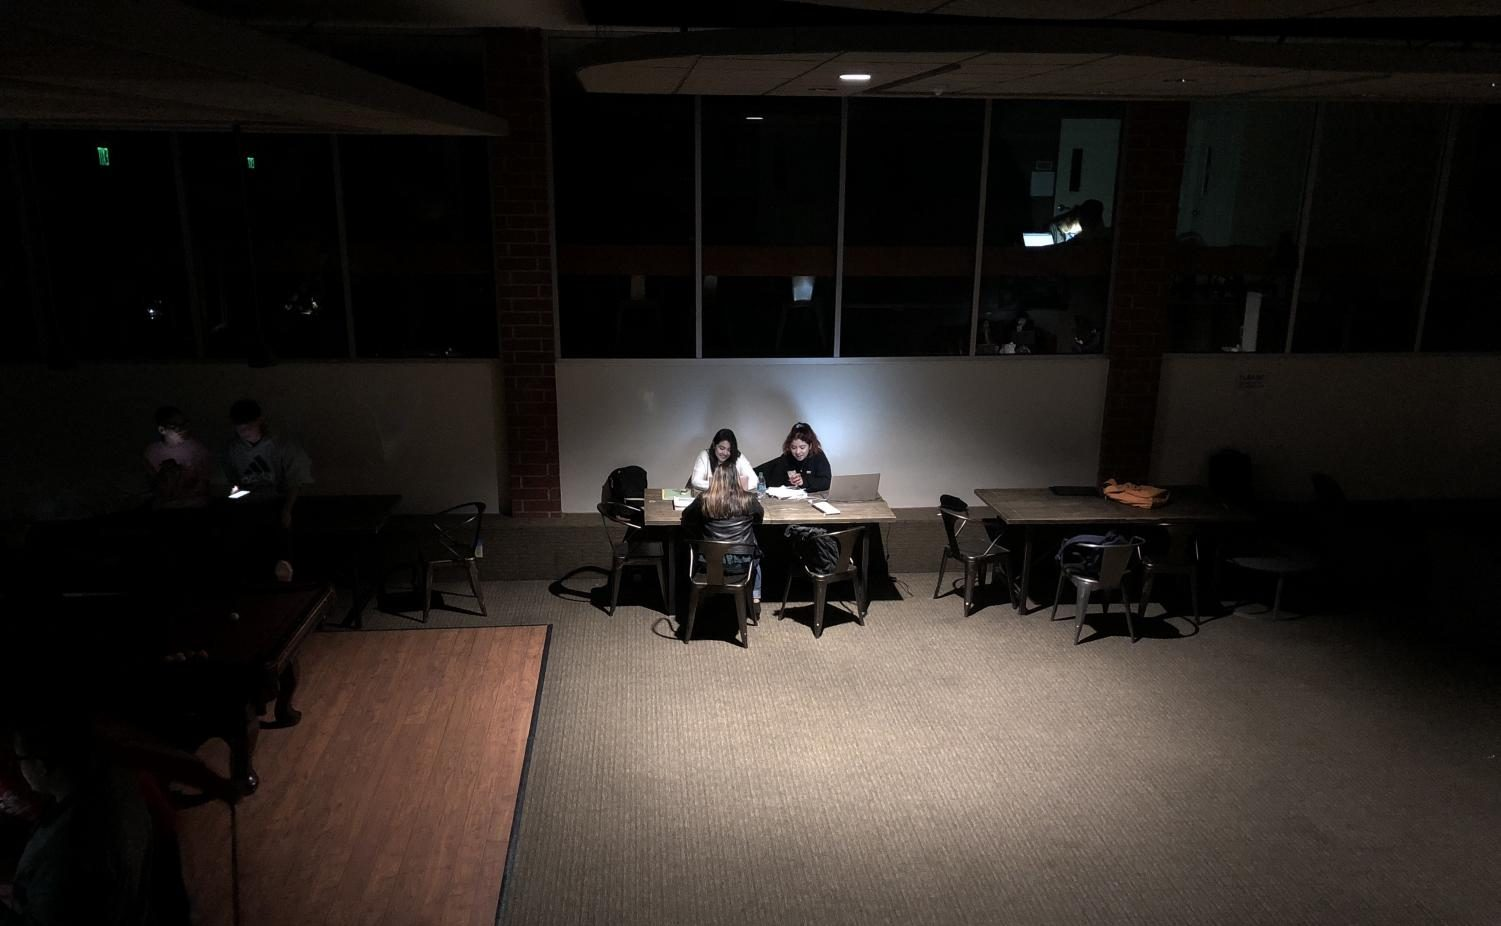 Students huddle under emergency lighting in the SUB during a power outage on campus on Jan. 16, 2018.